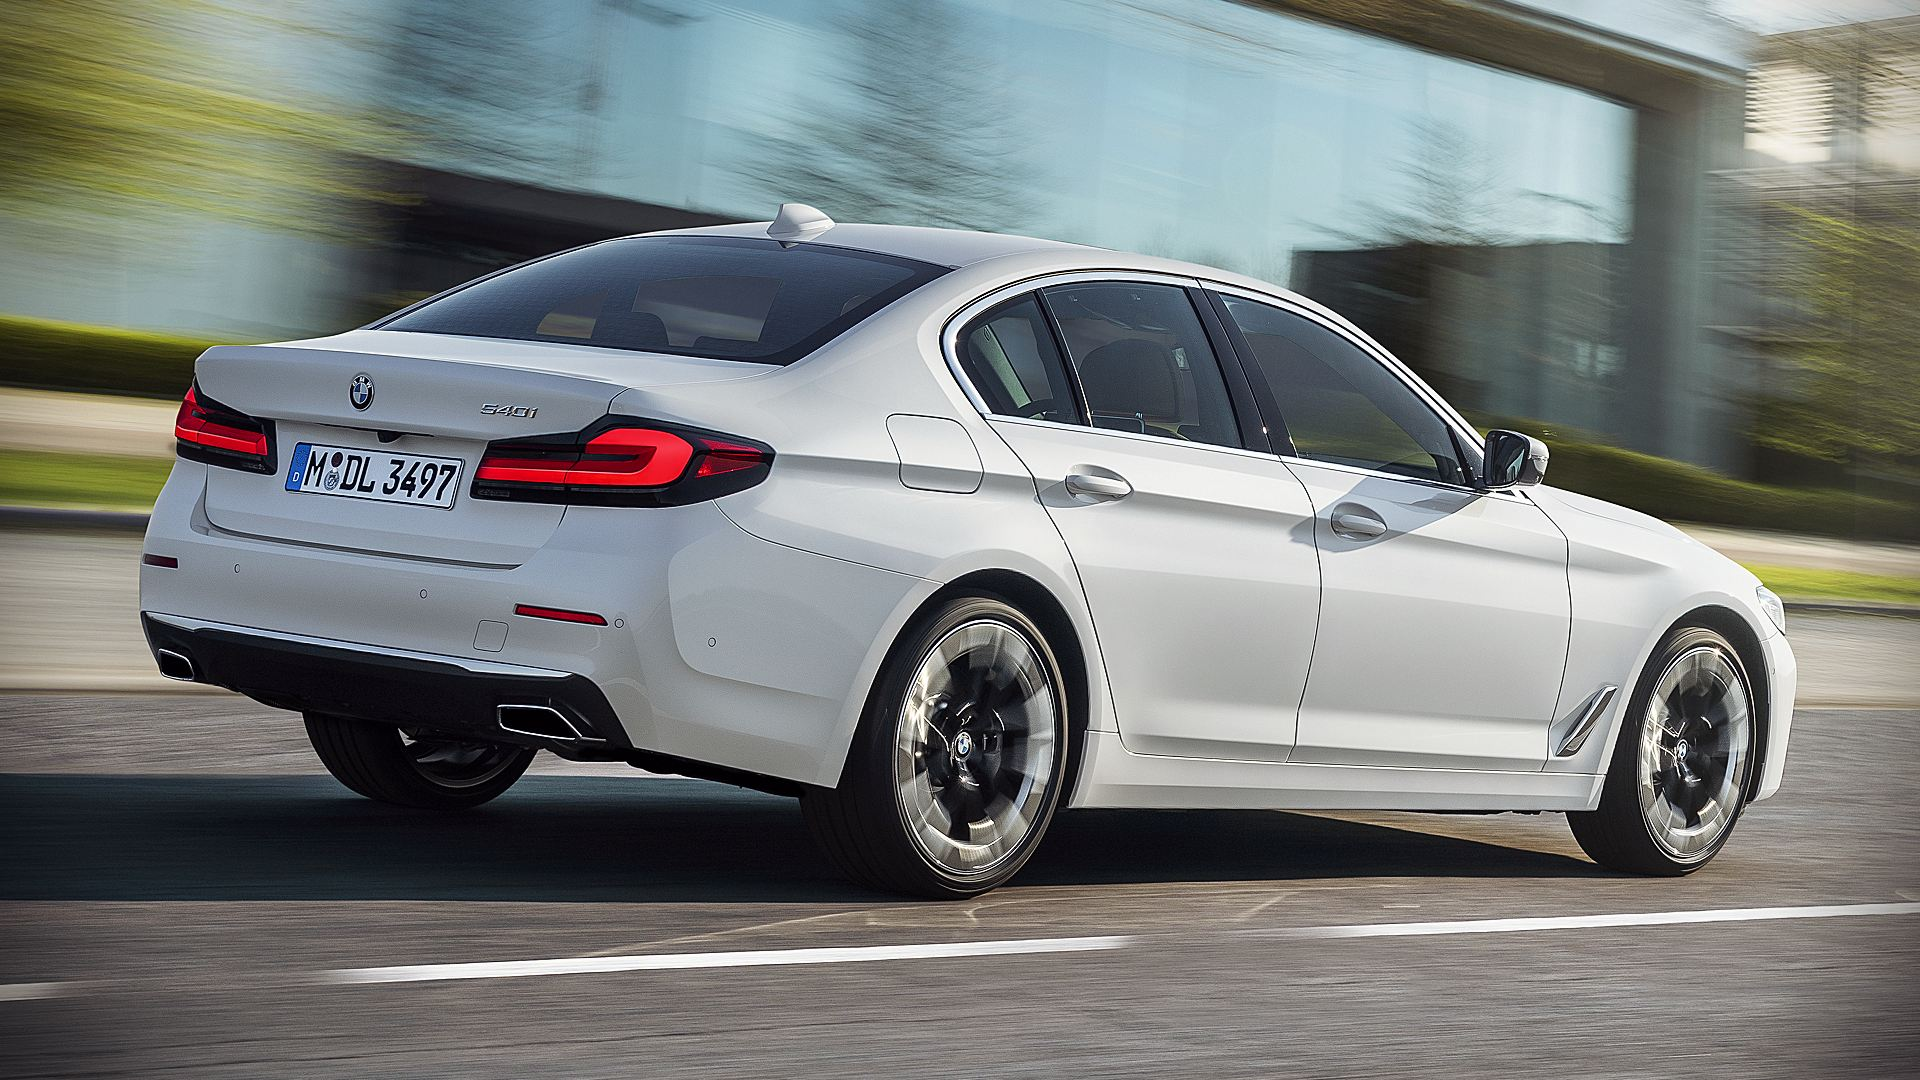 2021 BMW 5-Series 540i Images Pictures